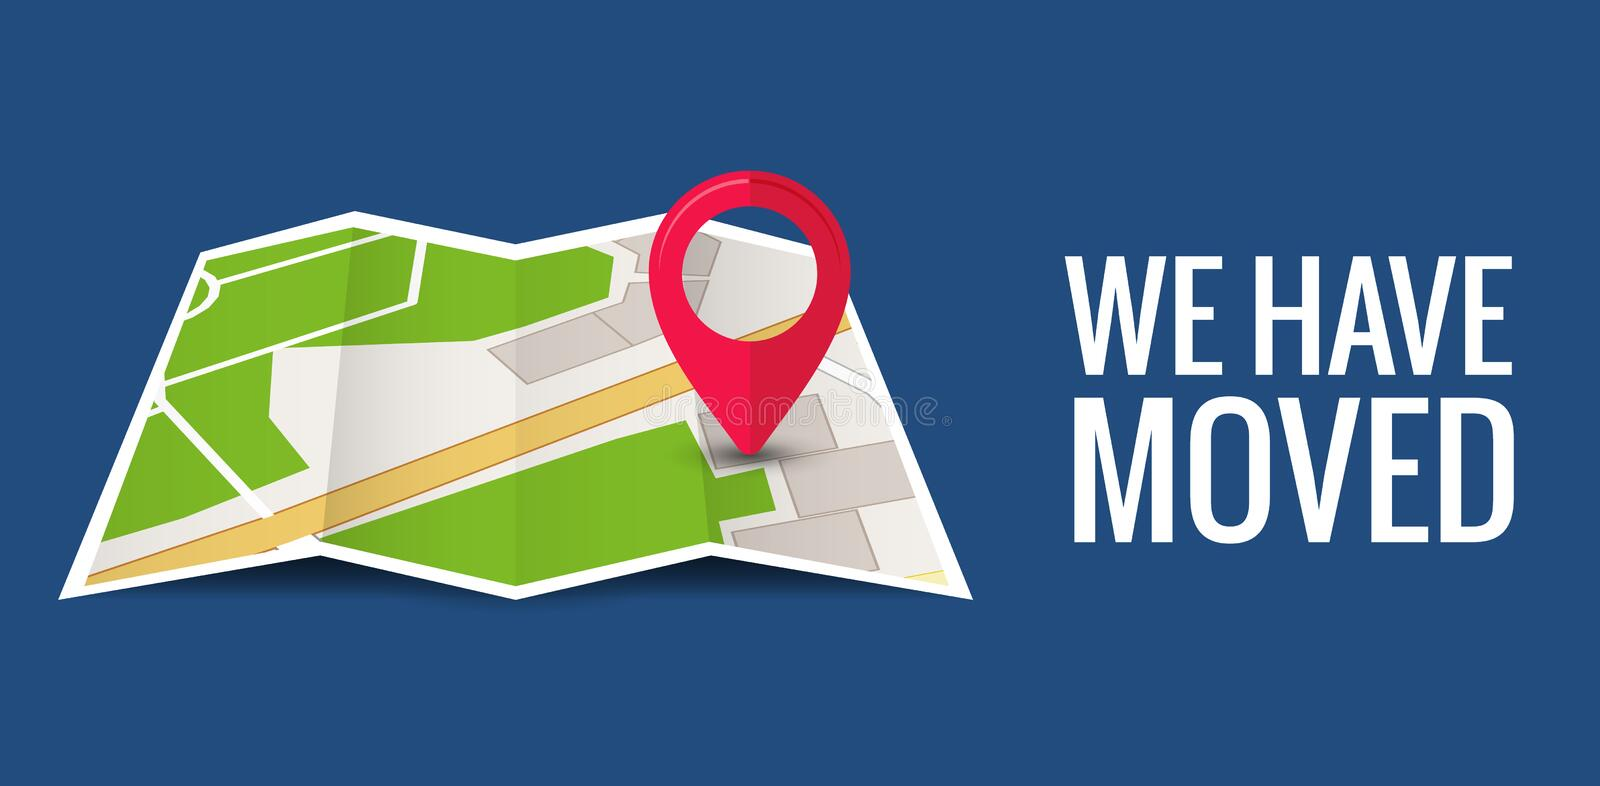 We have moved new office icon location. Address move change location announcement business home map royalty free illustration